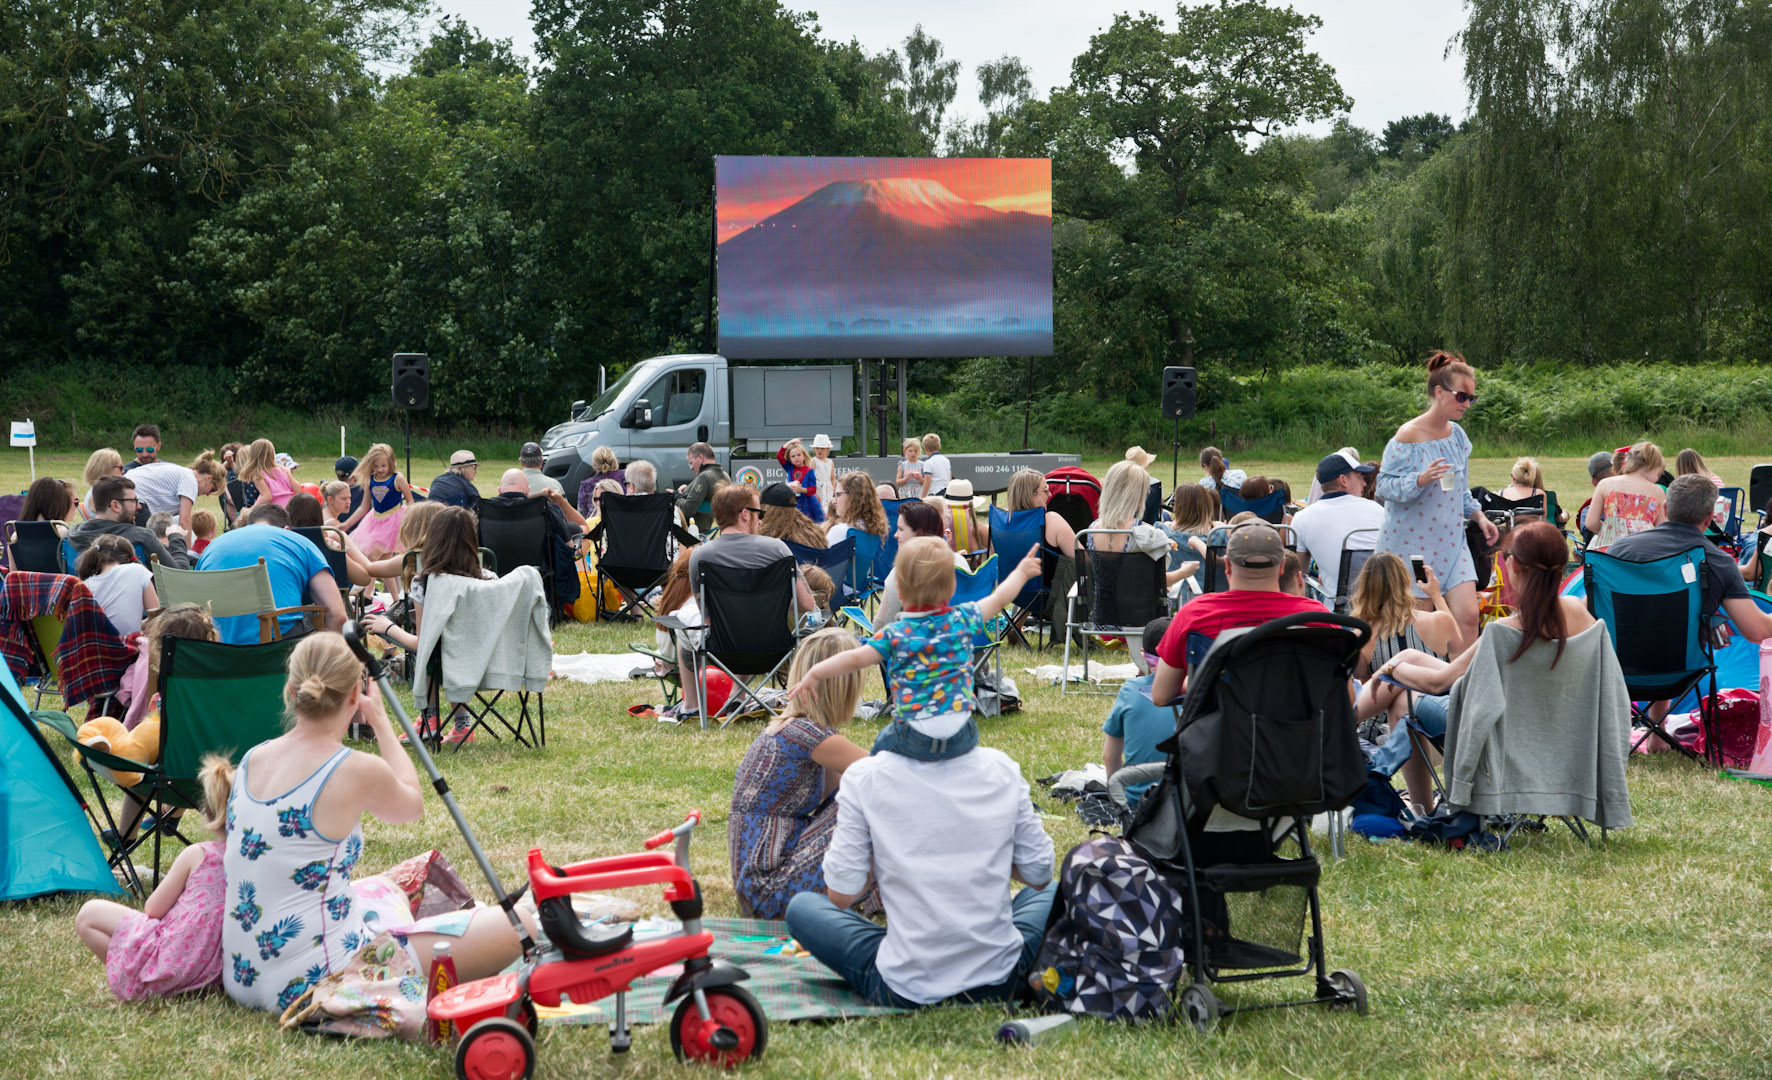 Hospice are delighted with the success of their Barnabas Big Screen